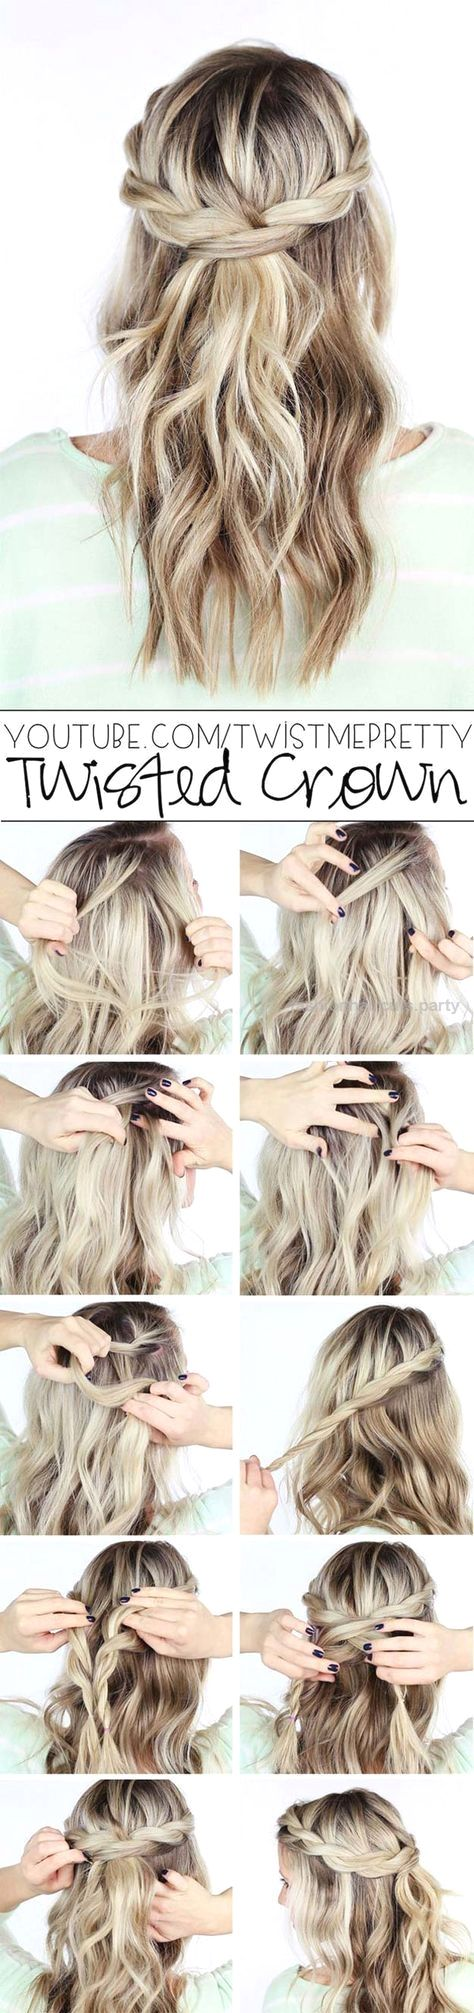 Cool and Easy DIY Hairstyles – Twisted Crown Braid – Quick and Easy Ideas for Ba… Cool and Easy DIY Hairstyles – Twisted Crown Braid – Quick and Easy Ideas for Back to School Styles for Medium, Short and Long Hair – Fun Tips and .. http://www.fashionhaircuts.party/2017/05/13/cool-and-easy-diy-hairstyles-twisted-crown-braid-quick-and-easy-ideas-for-ba-2/